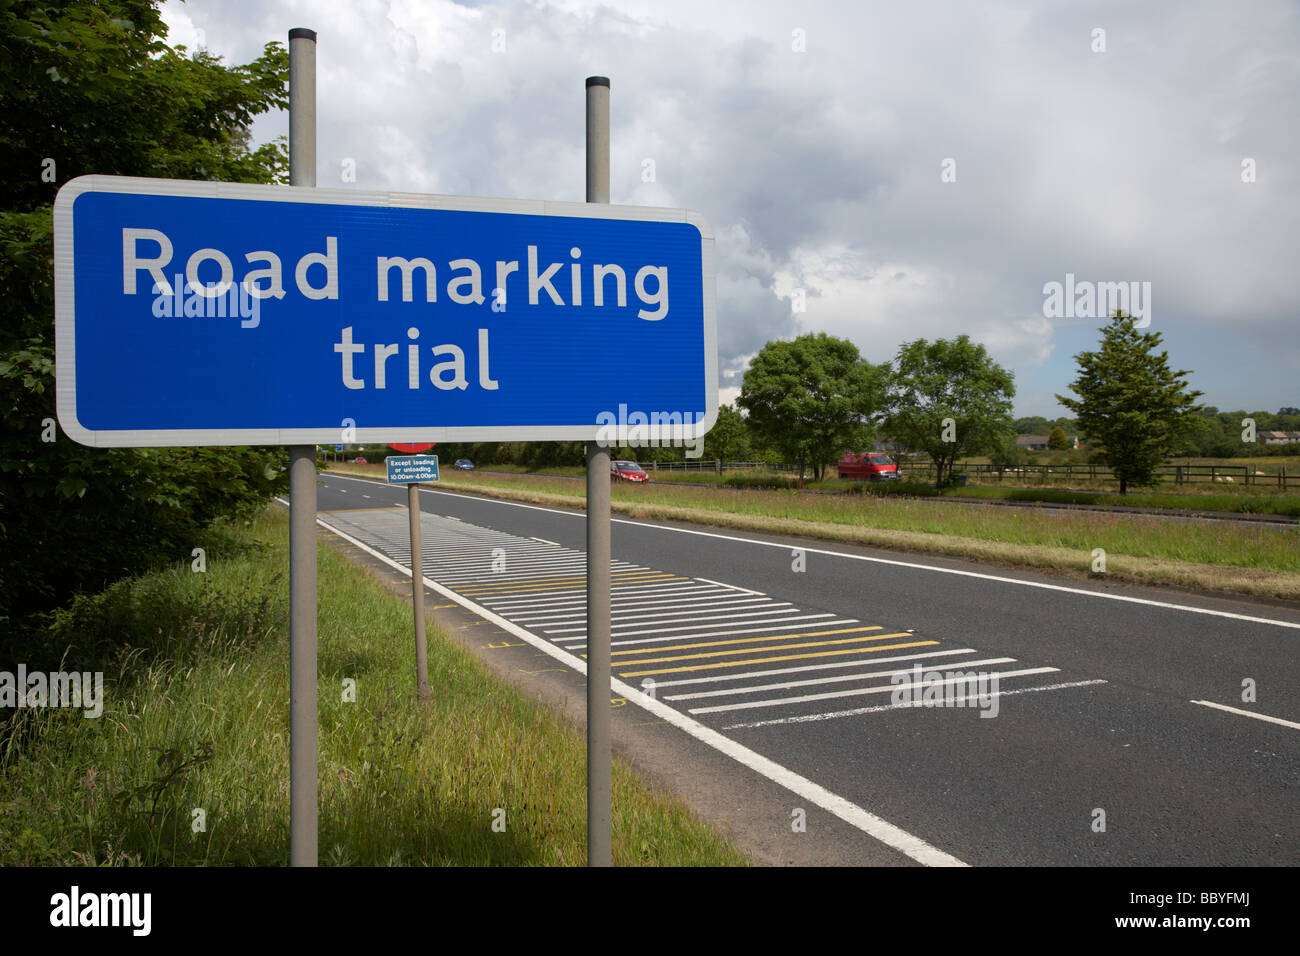 road marking trial roadsign and markings on dual carriageway county antrim northern ireland uk - Stock Image